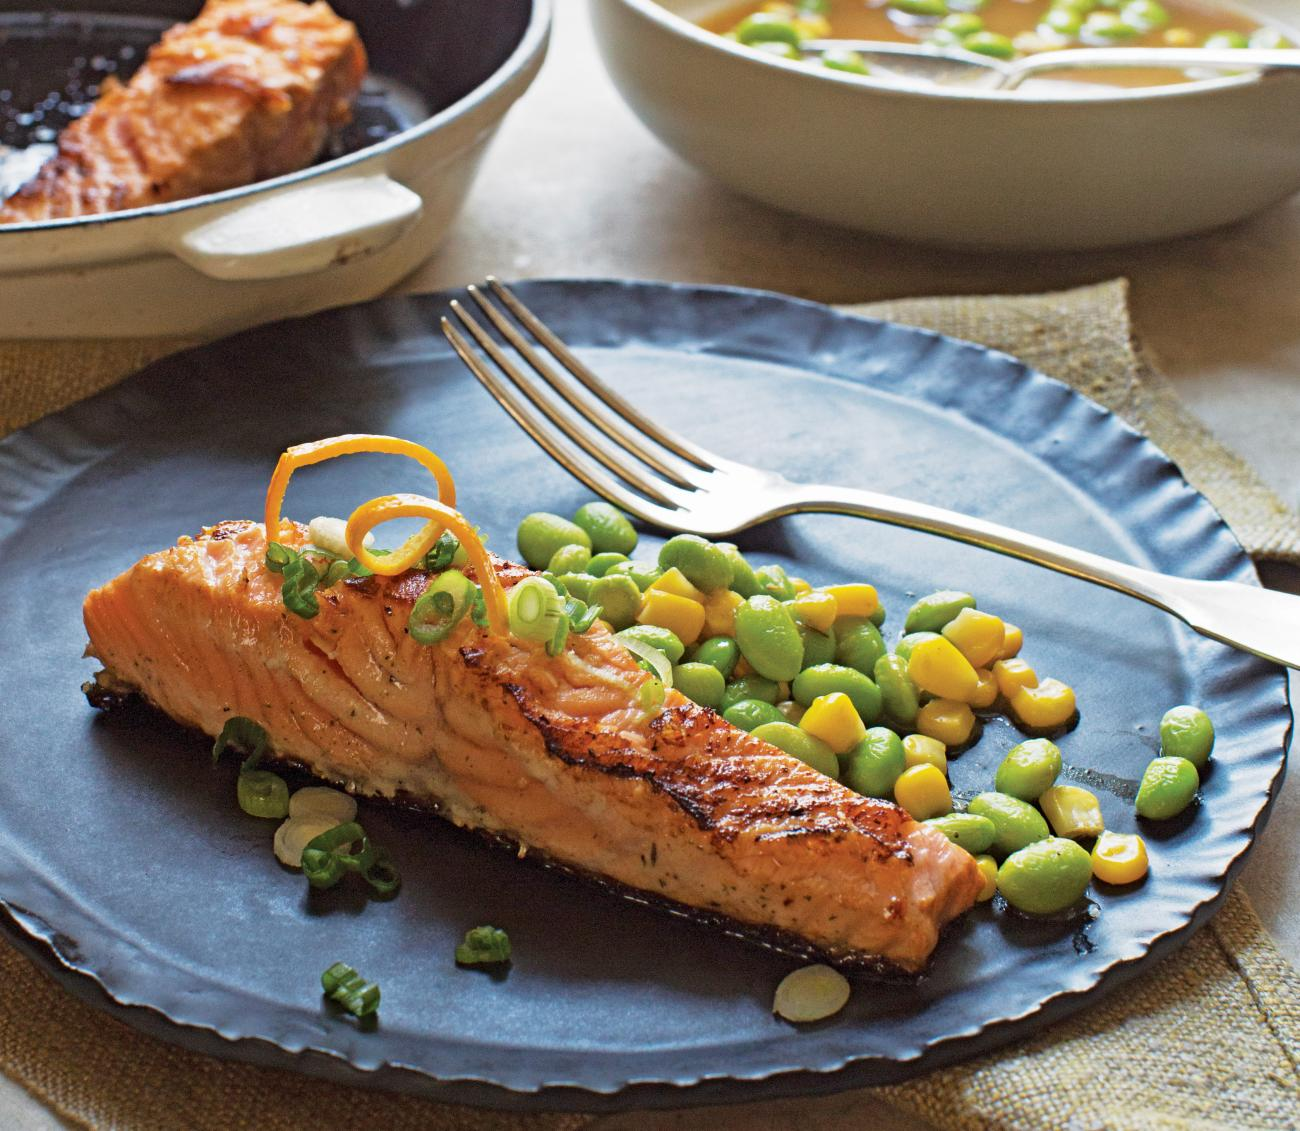 Spicy Orange Salmon Over Edamame and Corn